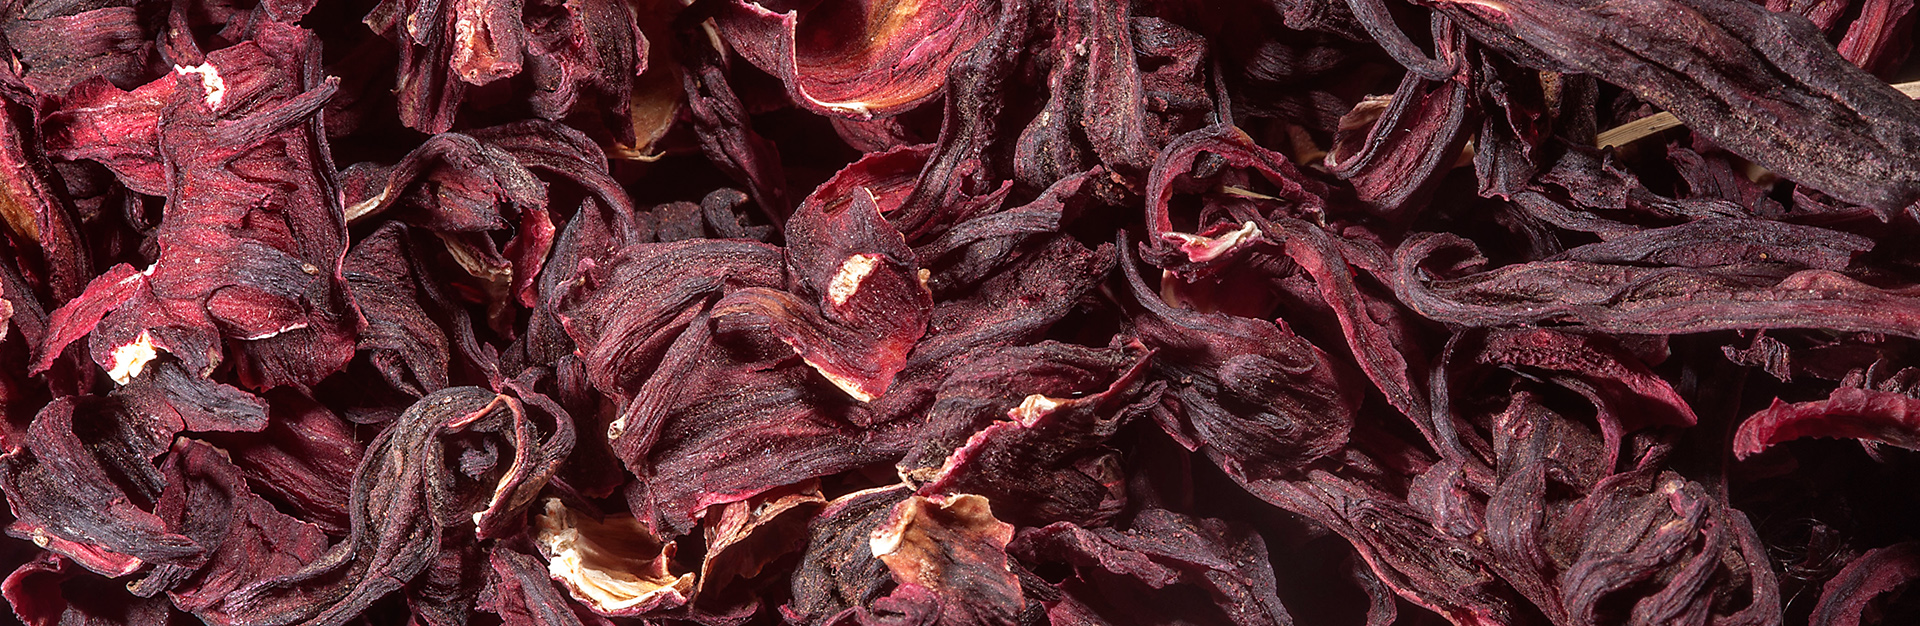 Dried hibiscus flowers robust international robust international dried hibiscus flowers izmirmasajfo